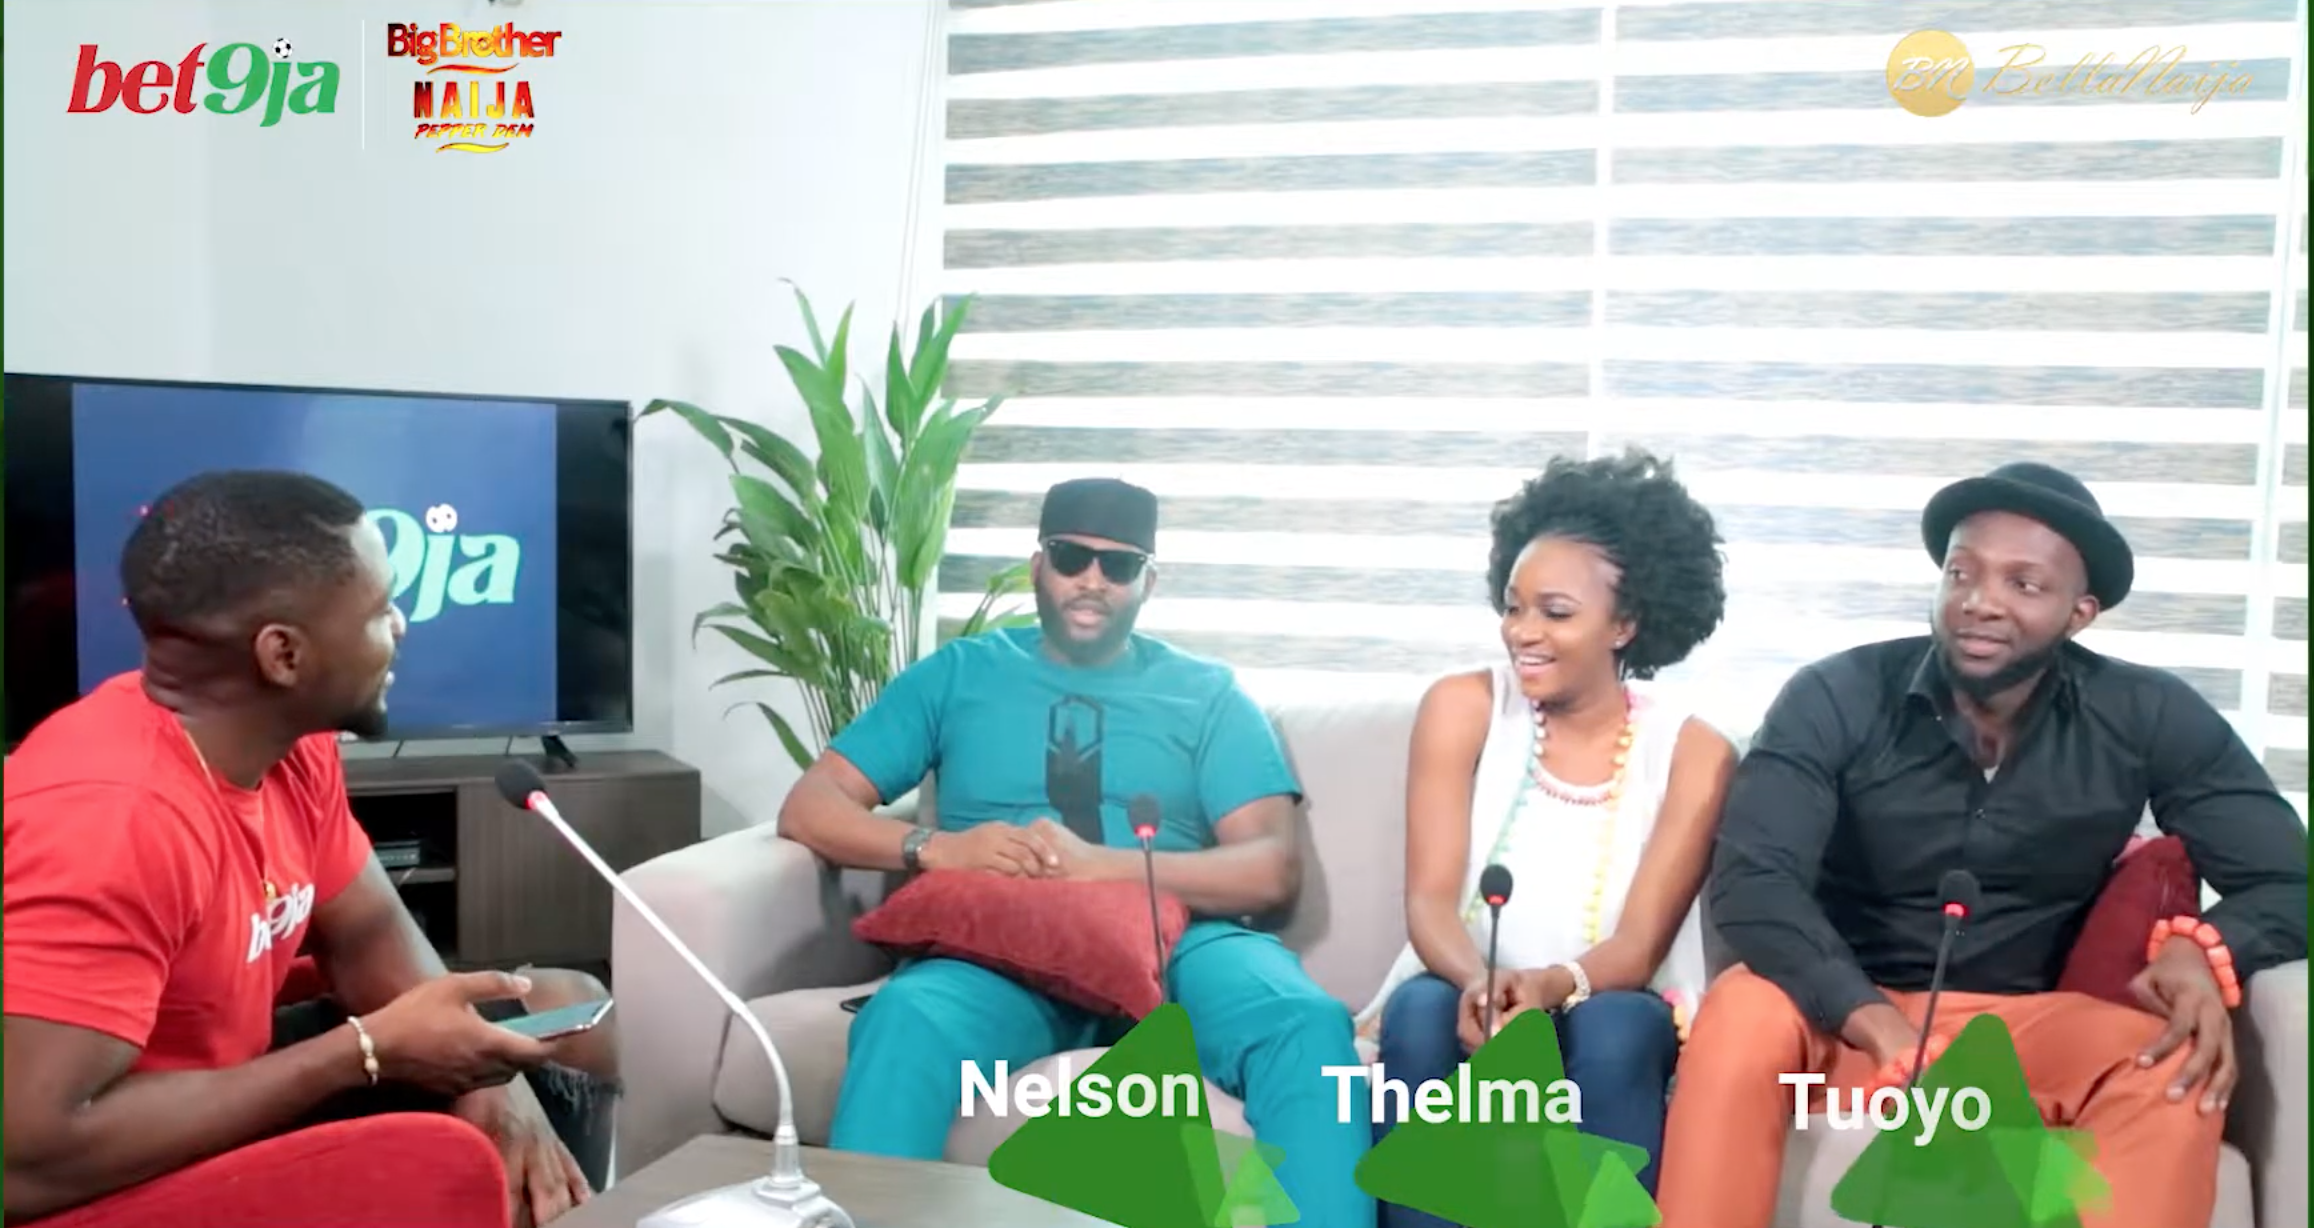 WATCH #Bet9jaBBN 'After The House' EP 3 With Tuoyo, Thelma, And Nelson